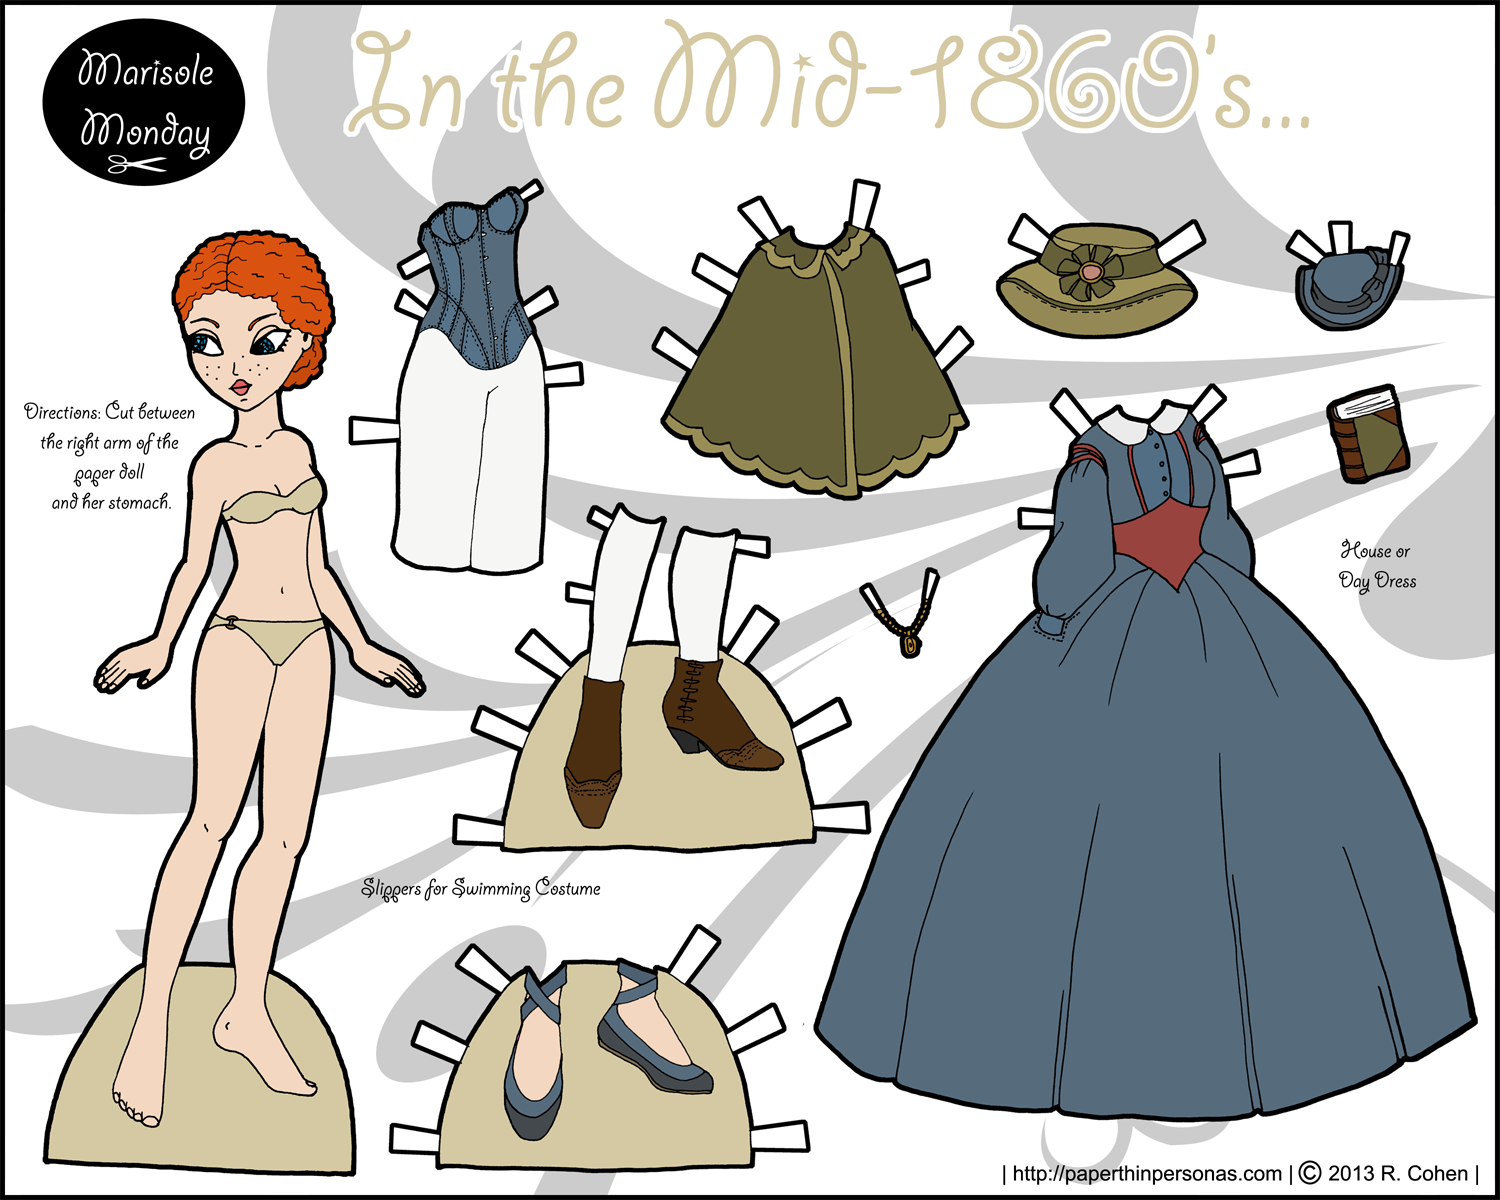 A historical paper doll with 1860s fashions in color- free to print from paperthinpersonas.com.